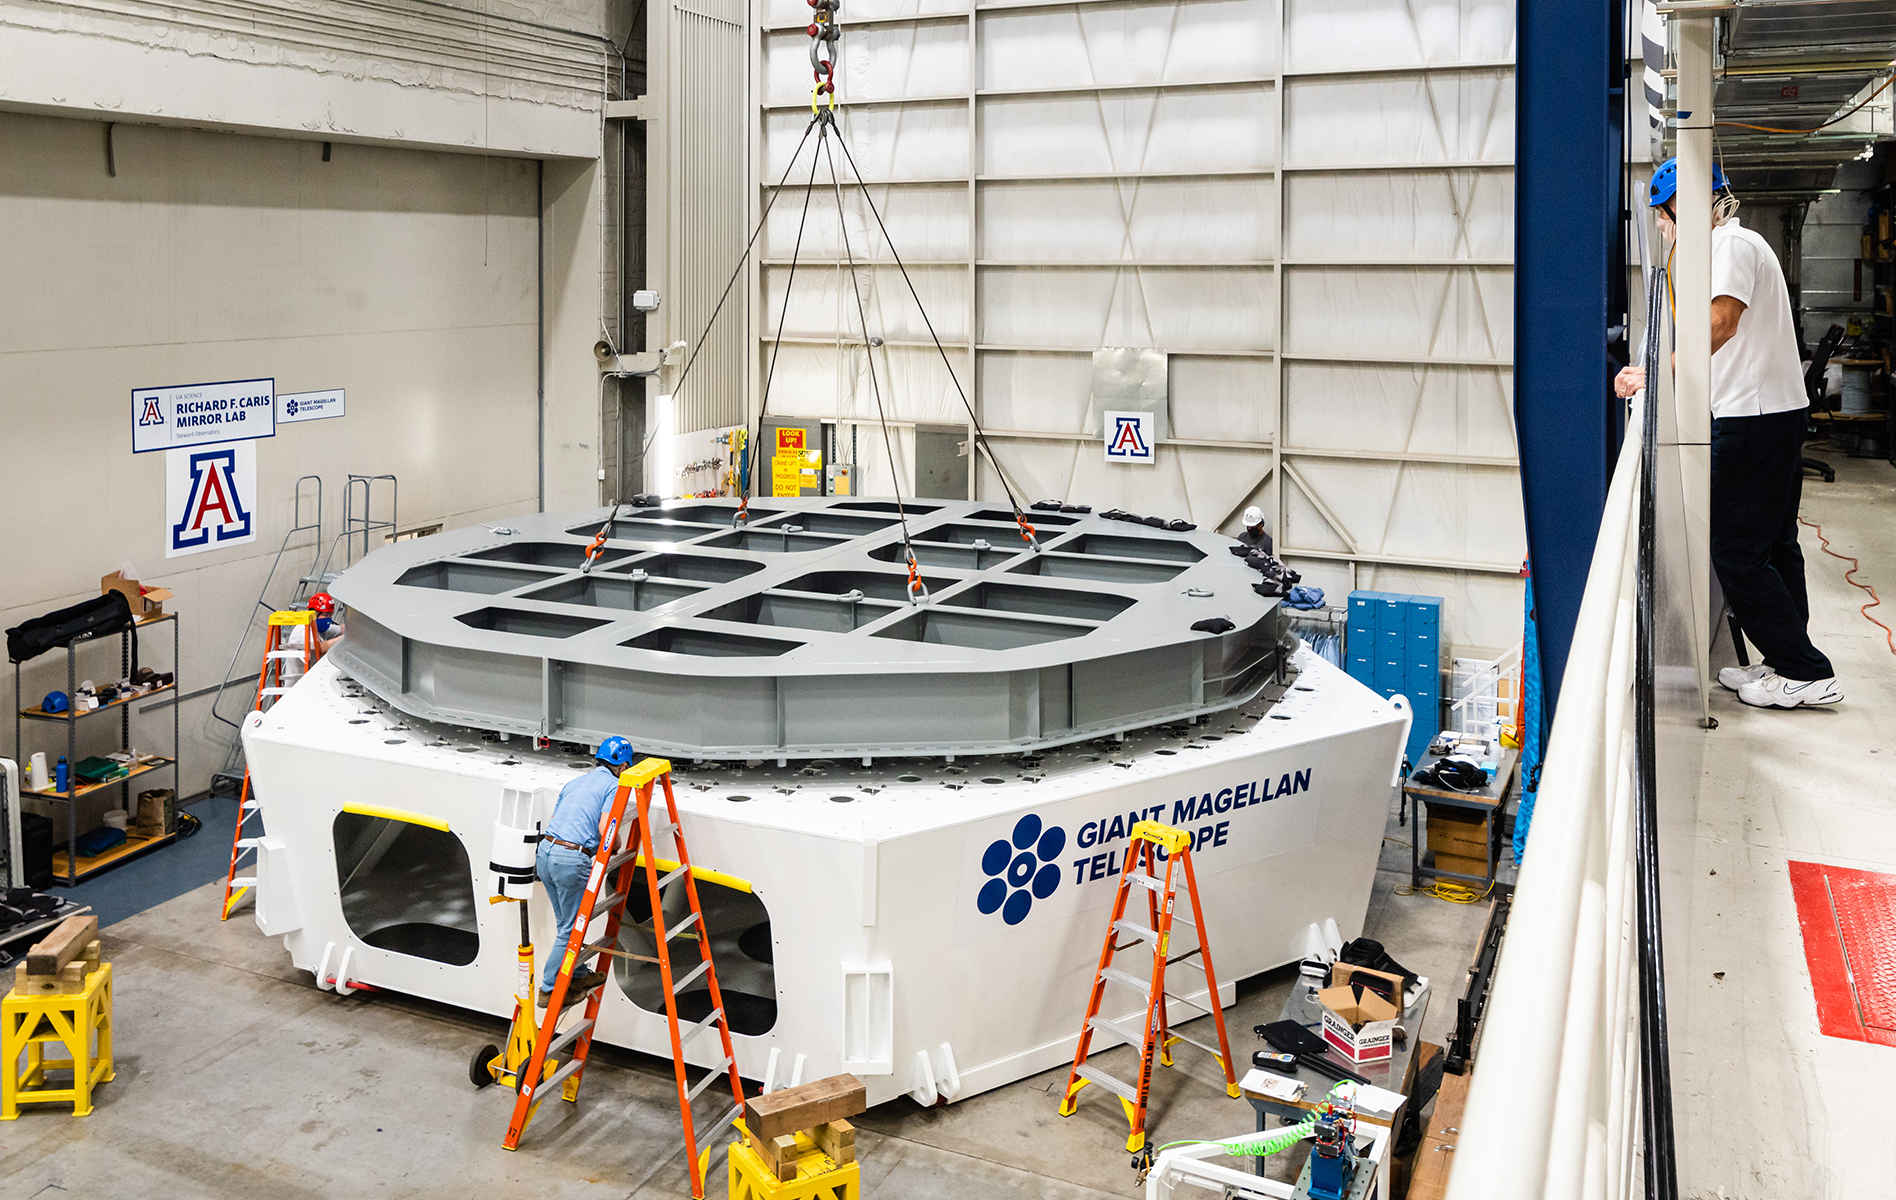 A gray steel structure that simulates one of the massive 16.5-ton Giant Magellan Telescope primary mirror segments is installed onto a test cell in the Richard F. Caris Mirror Lab at the University of Arizona. The GMT test cell and mirror simulator will be used to test the support structure and actuators being built, tested and assembled at Texas A&M University to hold the massive telescope in place, including the software that controls the precise movements of the mirrors